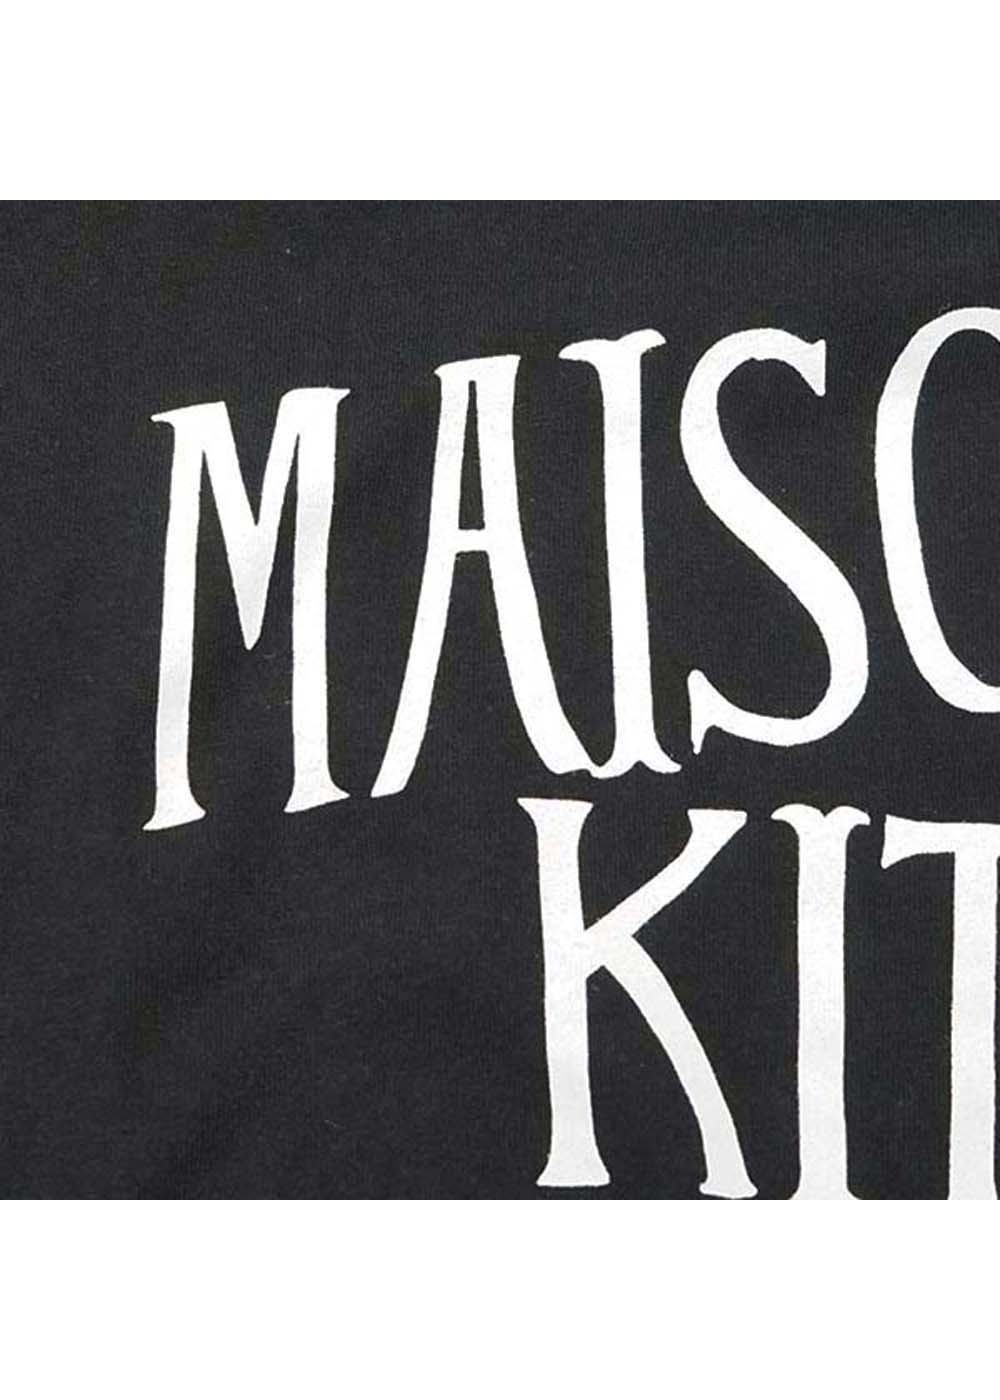 TEE-SHIRT PALAIS ROYAL|BLACK|Tシャツ・カットソー|MAISON KITSUNE_(C)|最大33%OFF